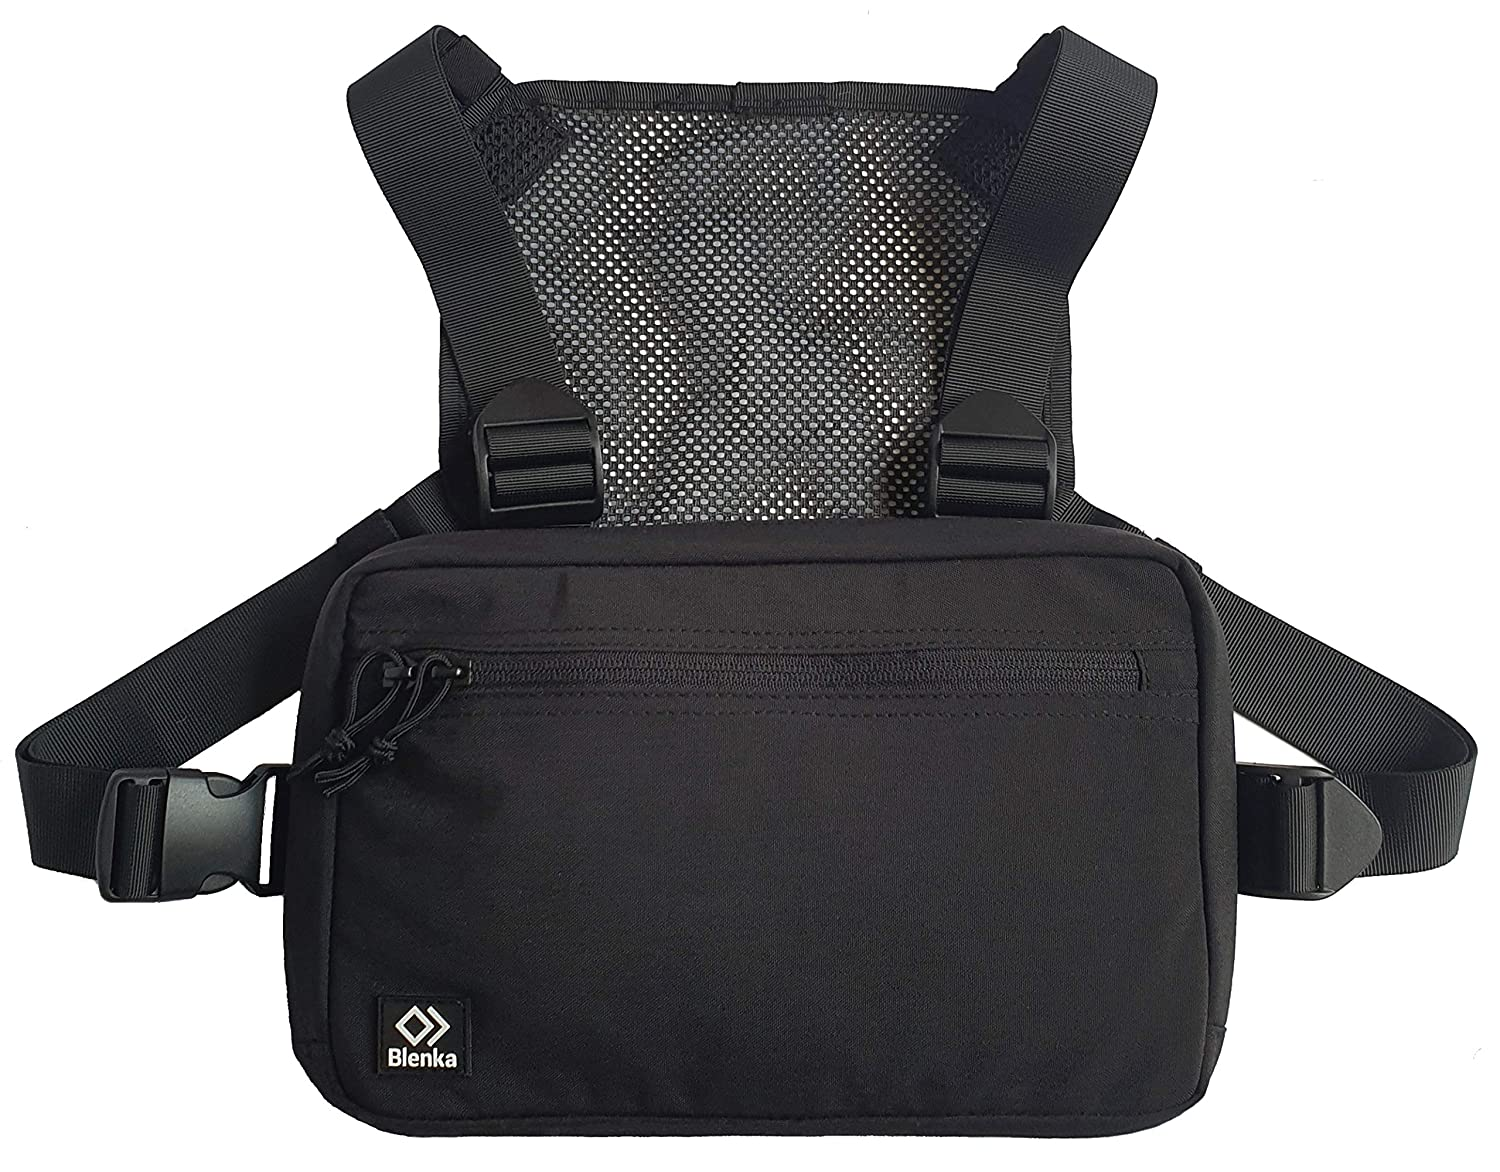 Blenka Lightweight Chest Pack Front Bag design great for Hiking, Running, Cycling, Climbing, Travelling and Tactical